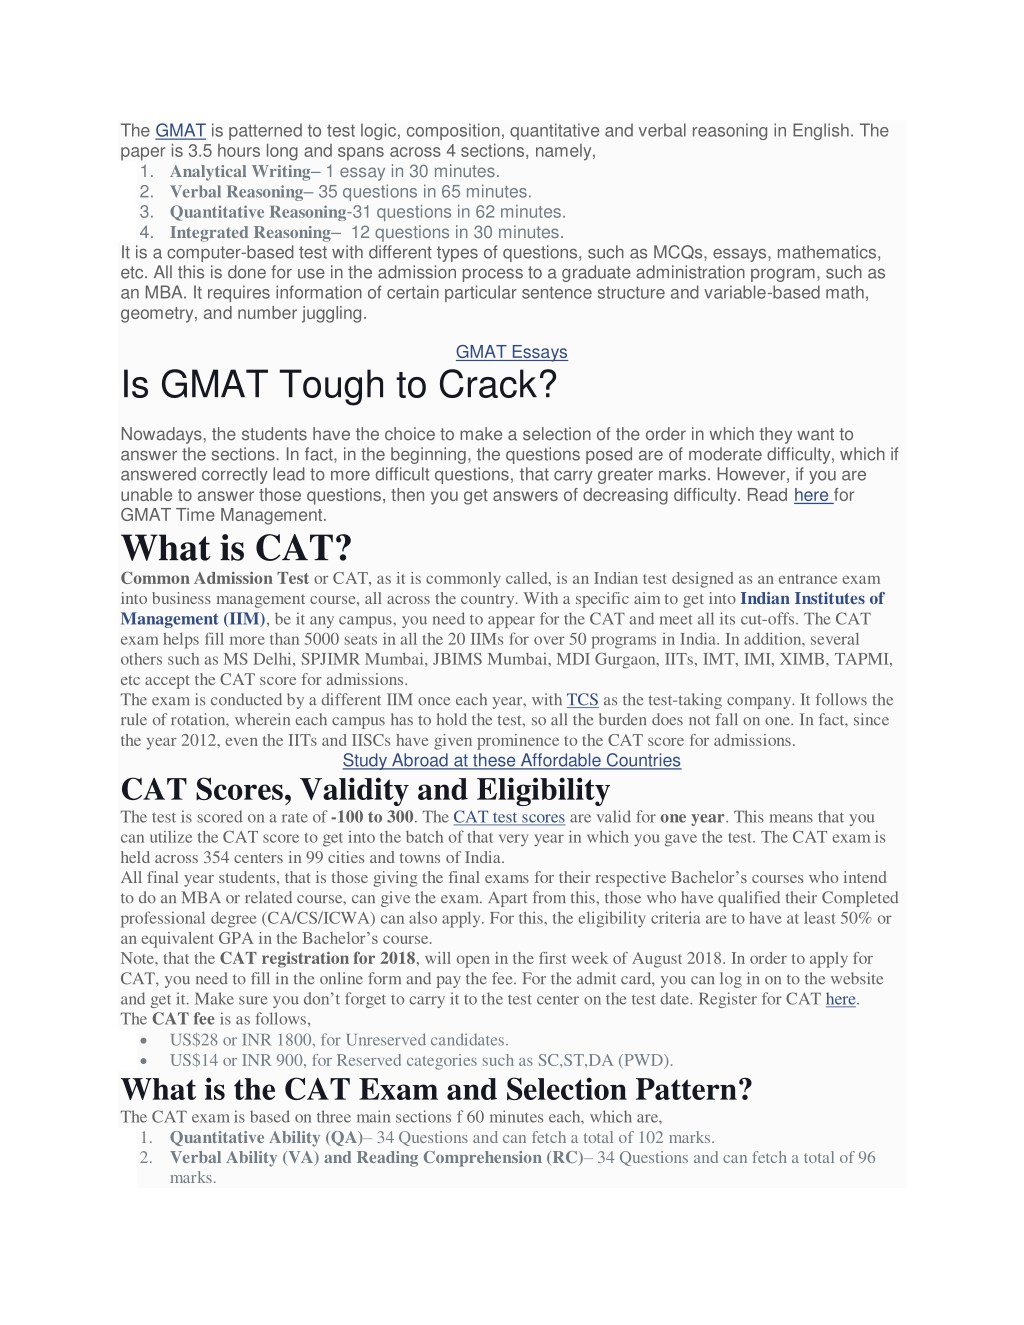 PPT - GMAT vs CAT: Which is the best for MBA? PowerPoint